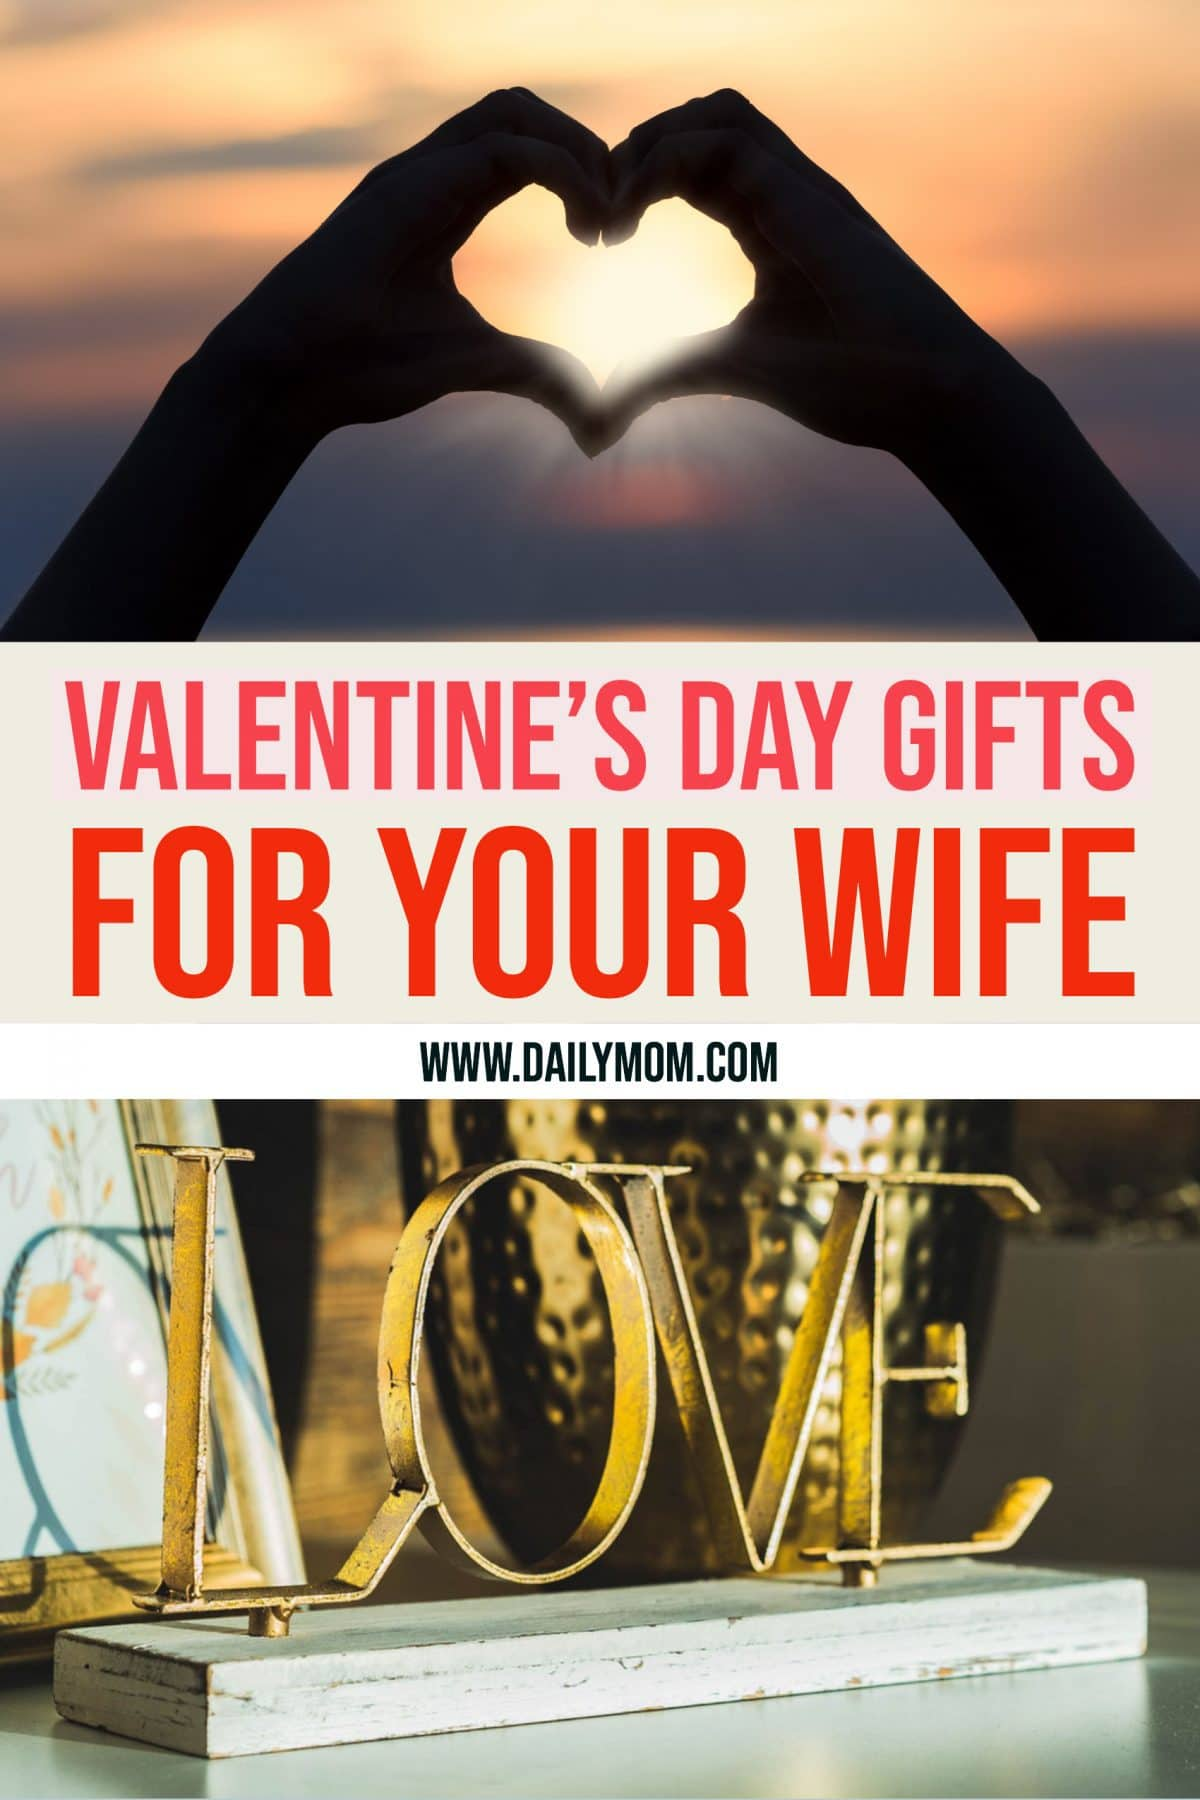 12 Valentine's Day Gifts For Your Wife